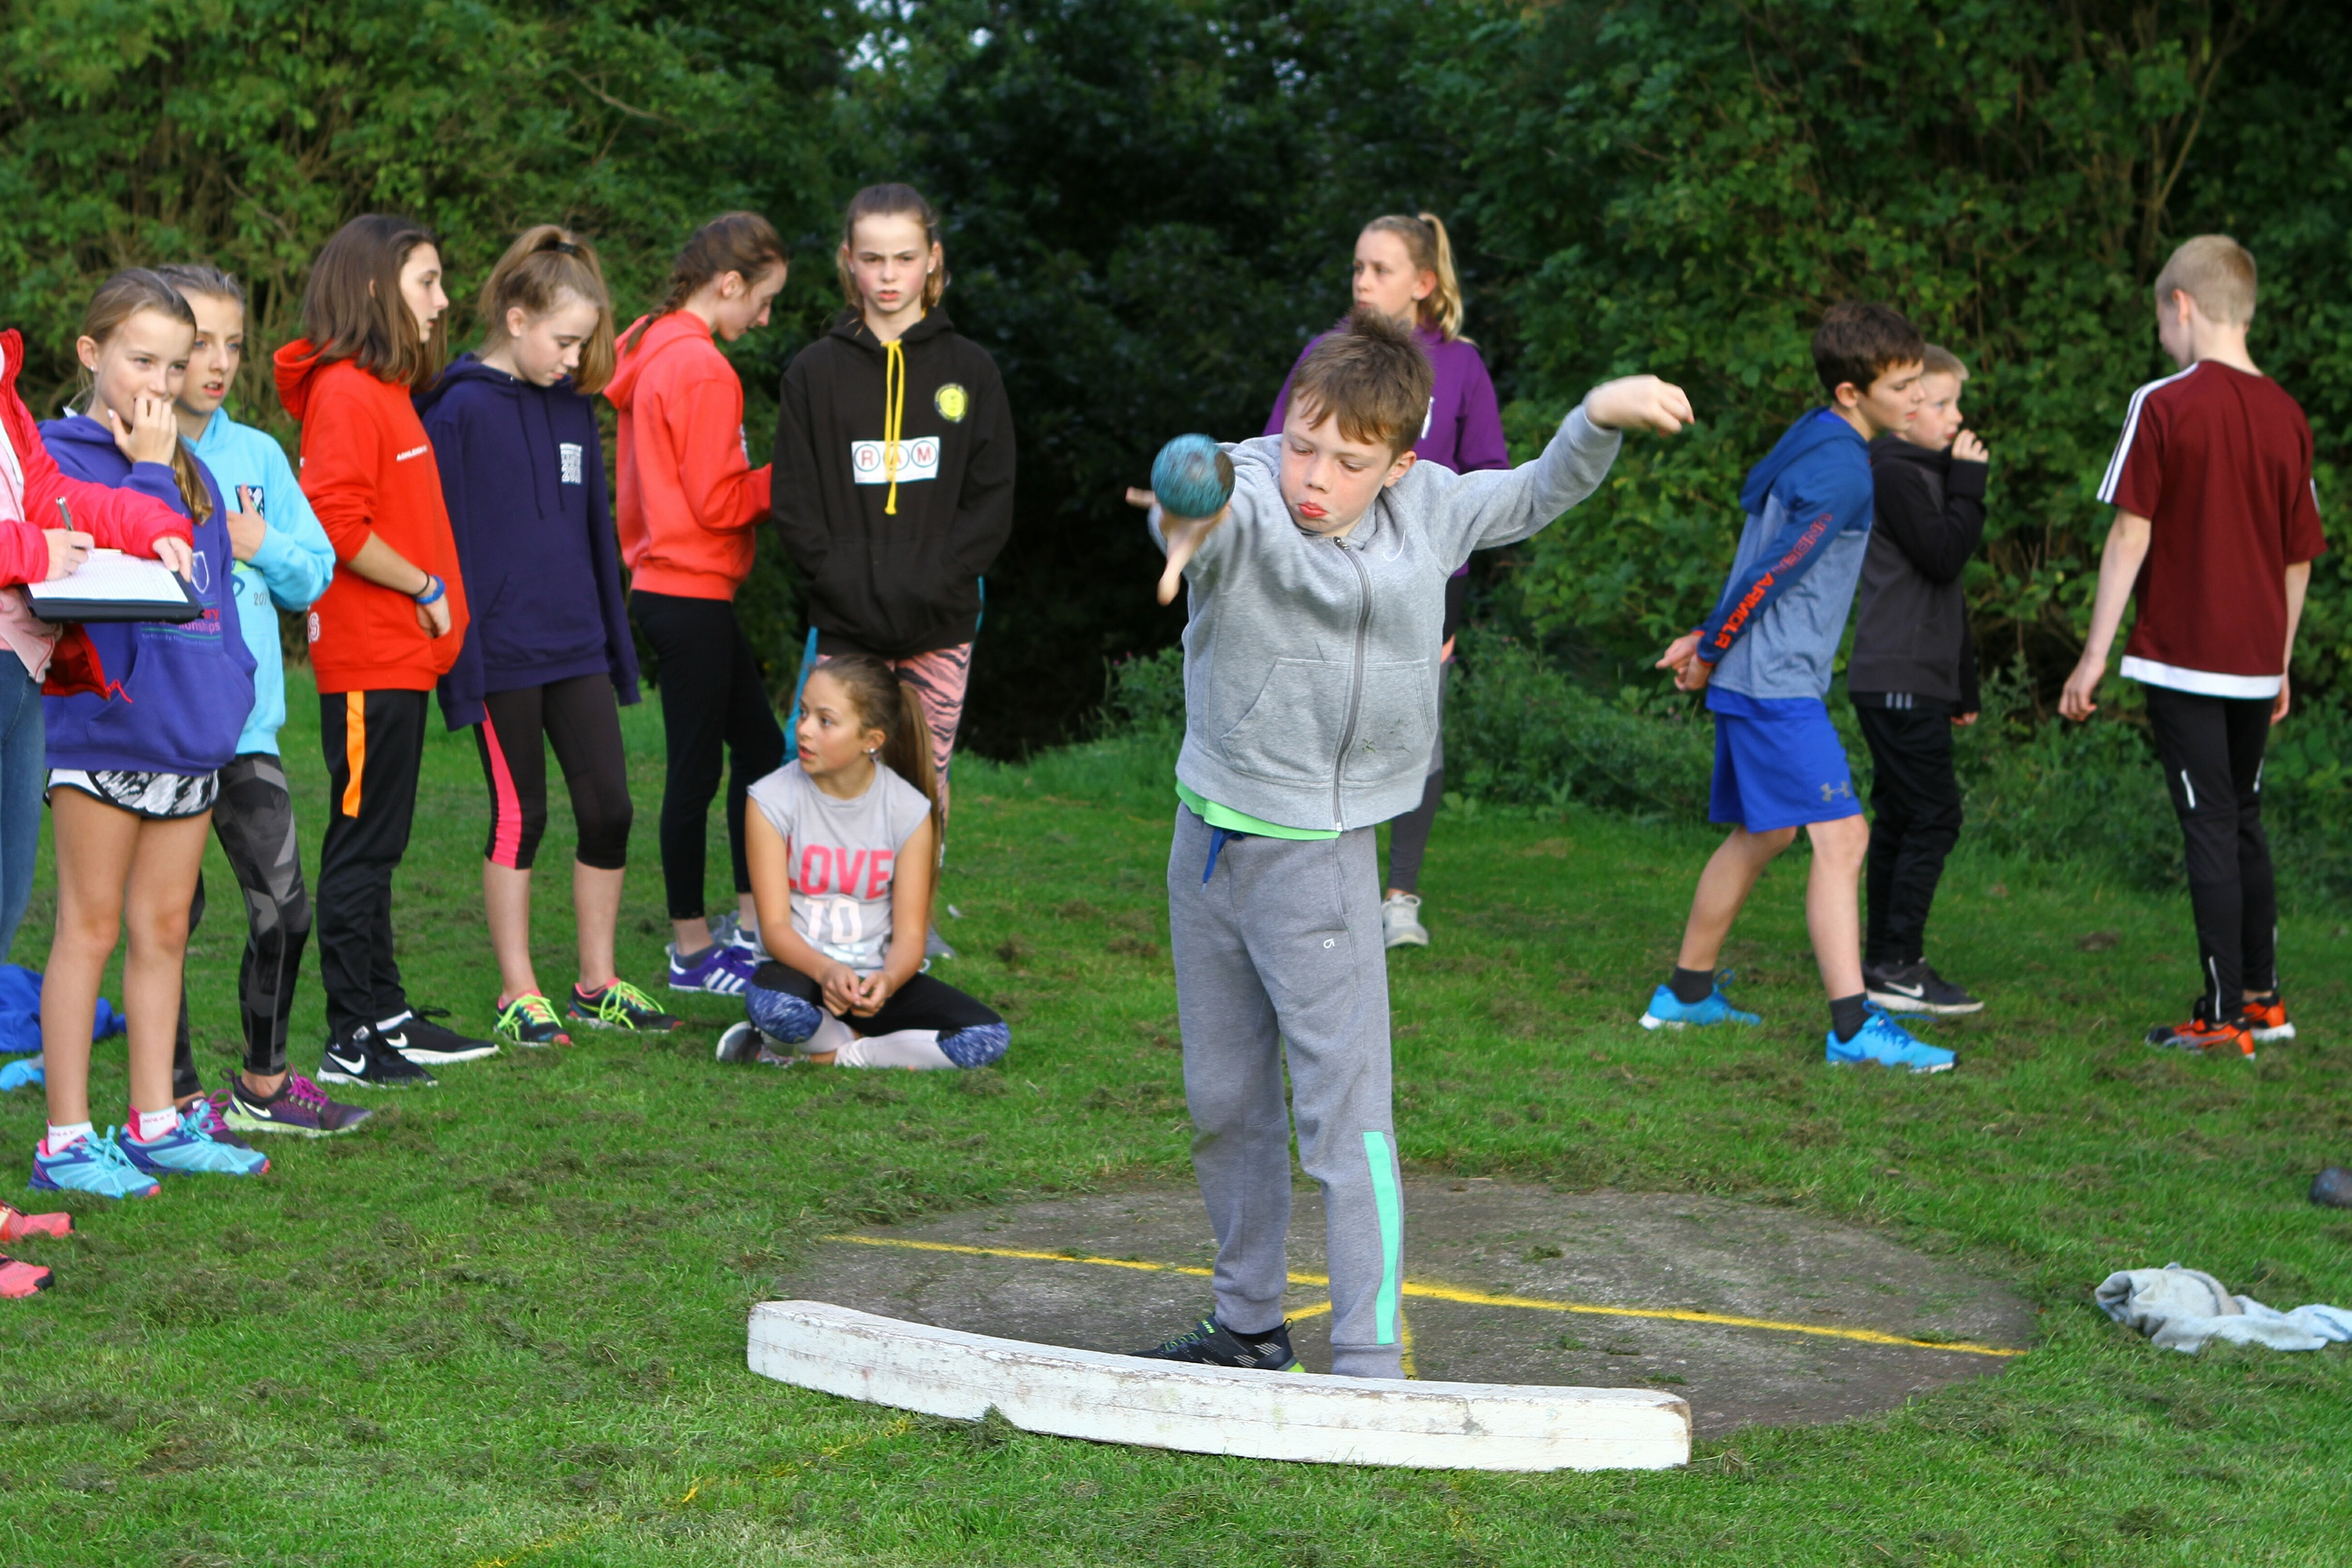 Youngsters taking part in the Arbroath and District Athletics Club pentathlon event at the Arbroath Sports Centre